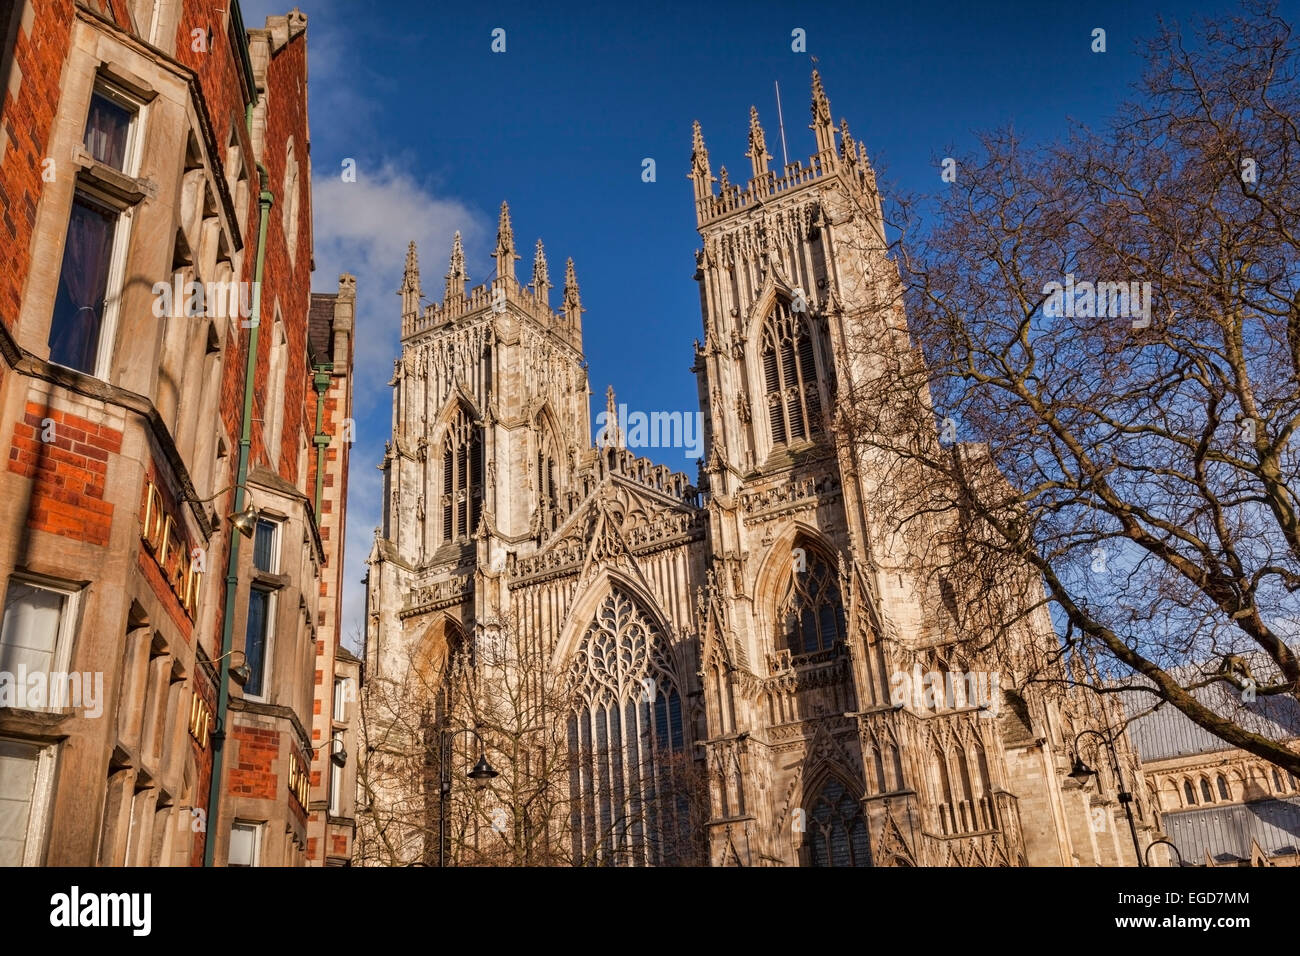 The West Front of York Minster, and on the left, the Dean Court Hotel. - Stock Image